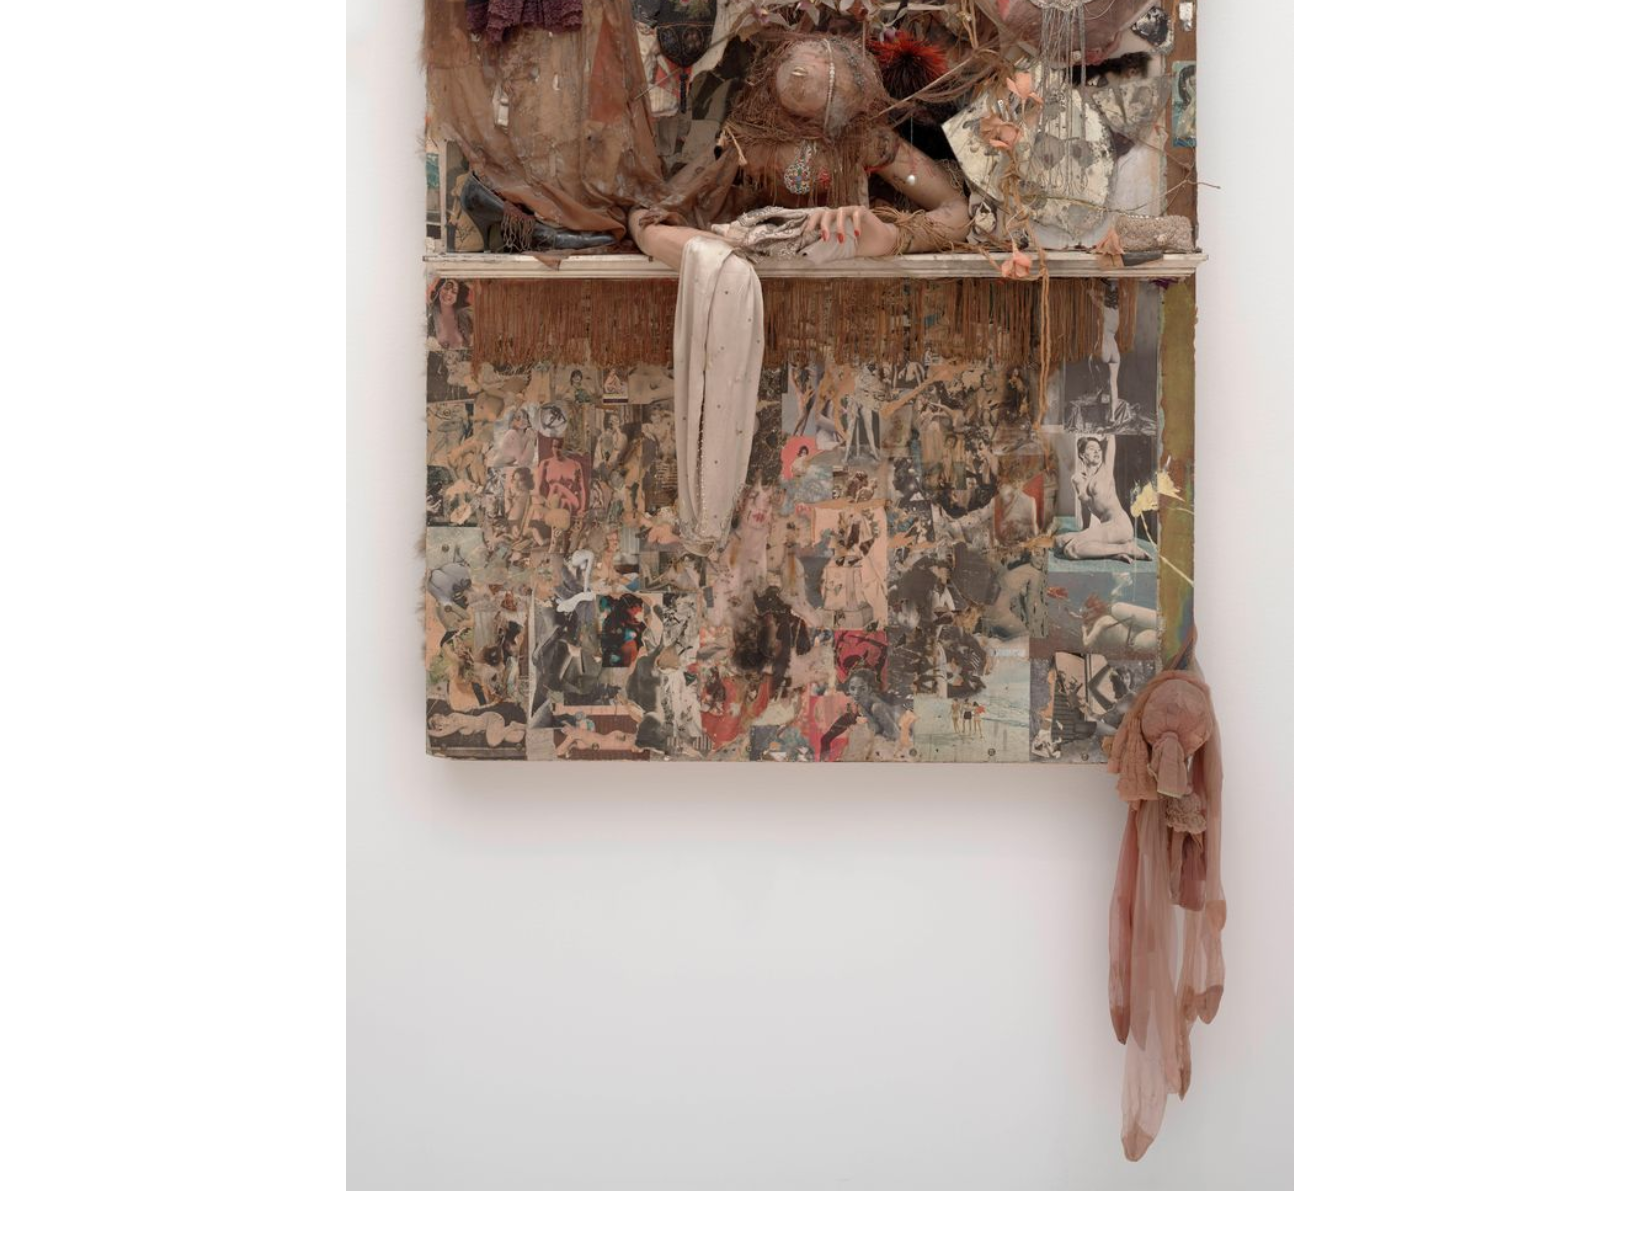 Bruce Conner,LOOKING GLASS, 1964; Mannequin arms, dried blowfish, painted wood, mirror, fringe, shoe, heart-shaped, cut and pasted printed papers, paint, nylon, fabric, jewelry, beads, string, doll voice box, fur, artificial flowers, feathers, garter clip, tinsel, and metal on Masonite, 60 1/2 x 48 x 14 1/2 in. (153.67 x 121.92 x 36.83 cm); Collection SFMOMA, San Francisco Museum of Modern Art. Gift of the Modern Art Council; © Conner Family Trust, San Francisco / Artists Rights Society (ARS), New York  sfmoma.org